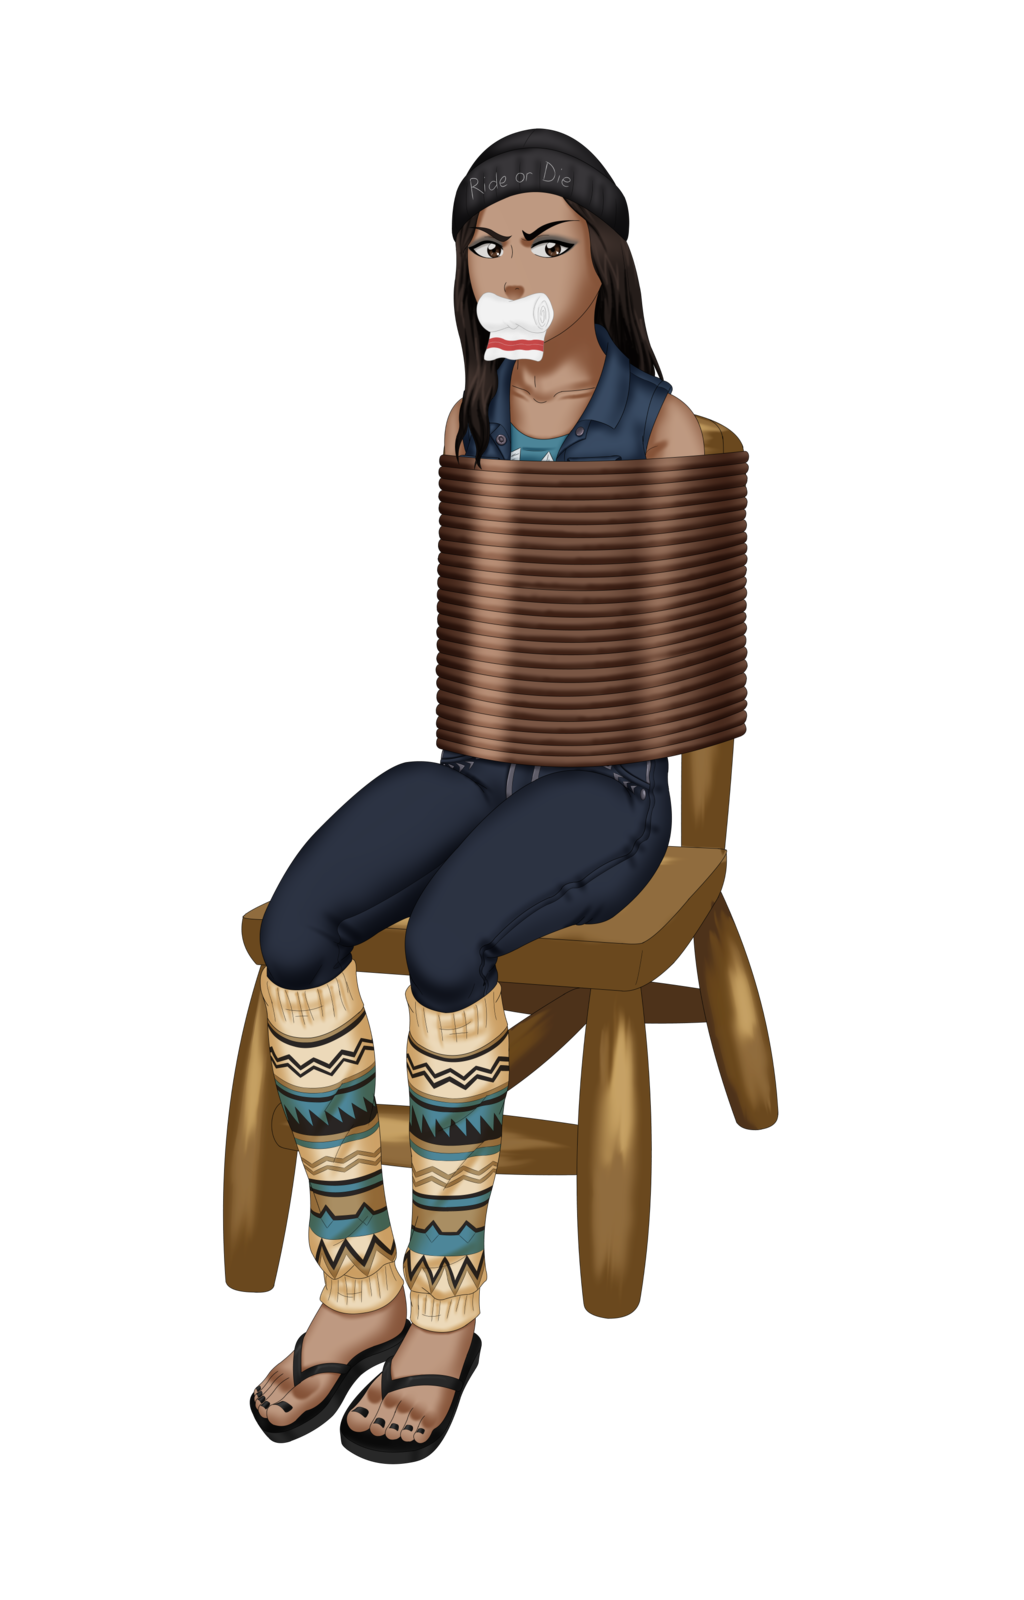 Nova Kidnapped (tied up to chair)